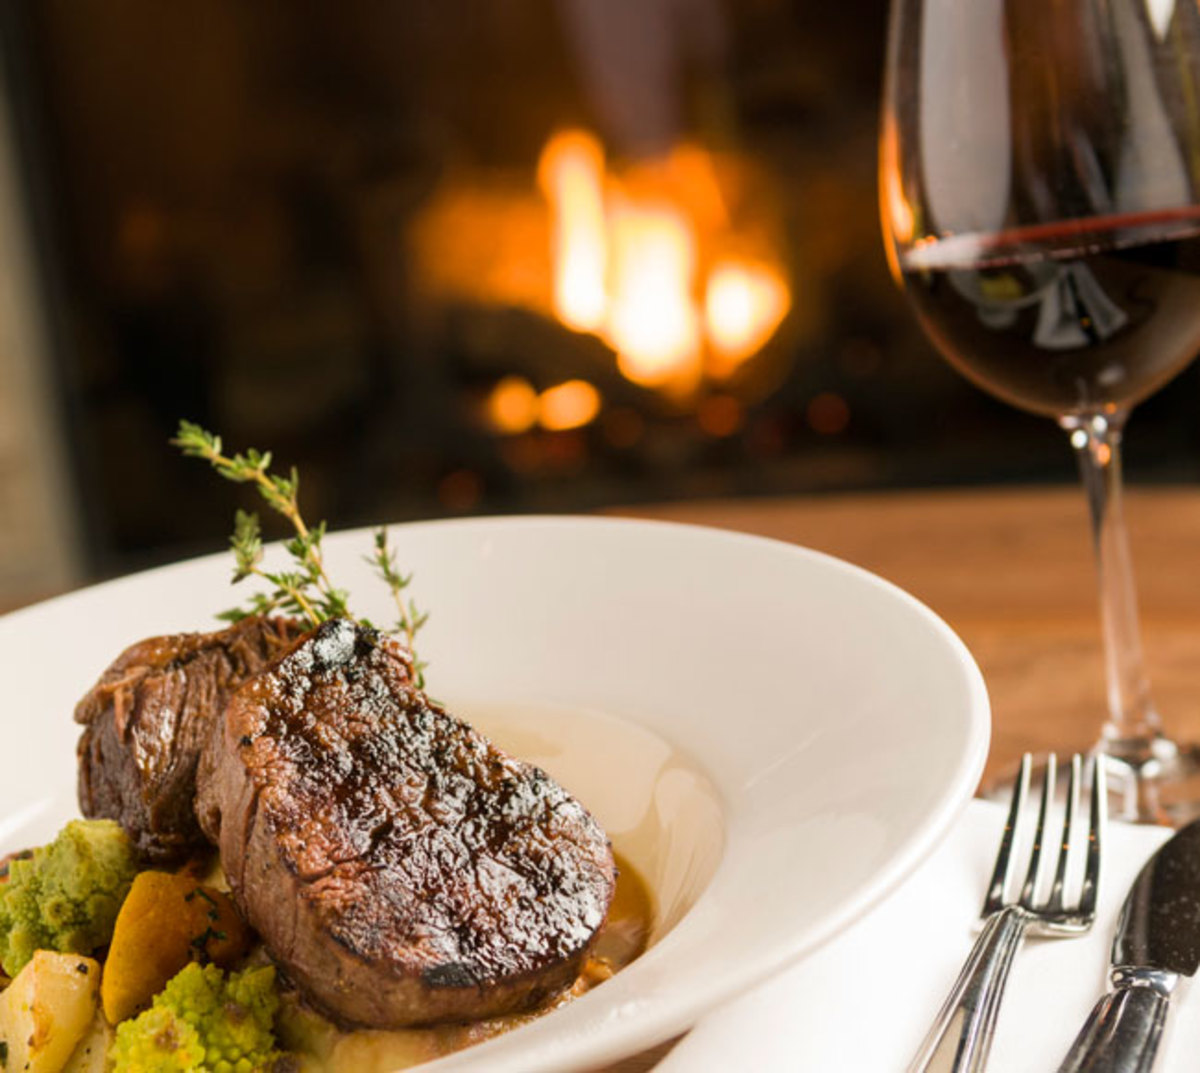 beef-and-red-wine-meal-in-front-of-fireplace